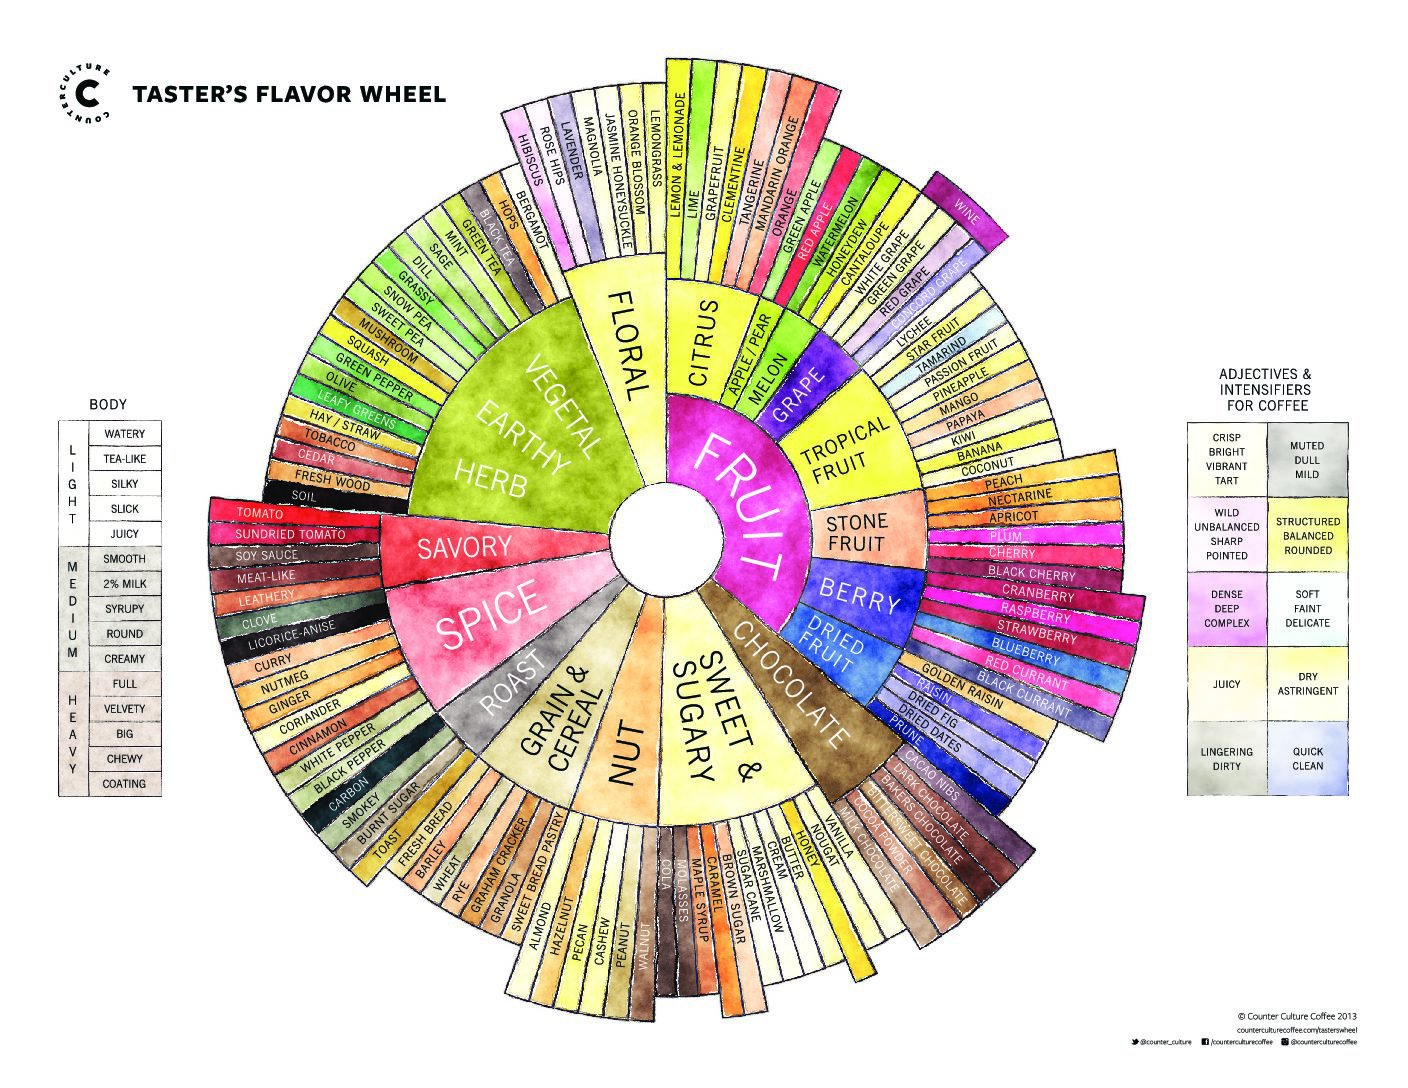 https://counterculturecoffee.com/learn/resource-center/coffee-tasters-flavor-wheel